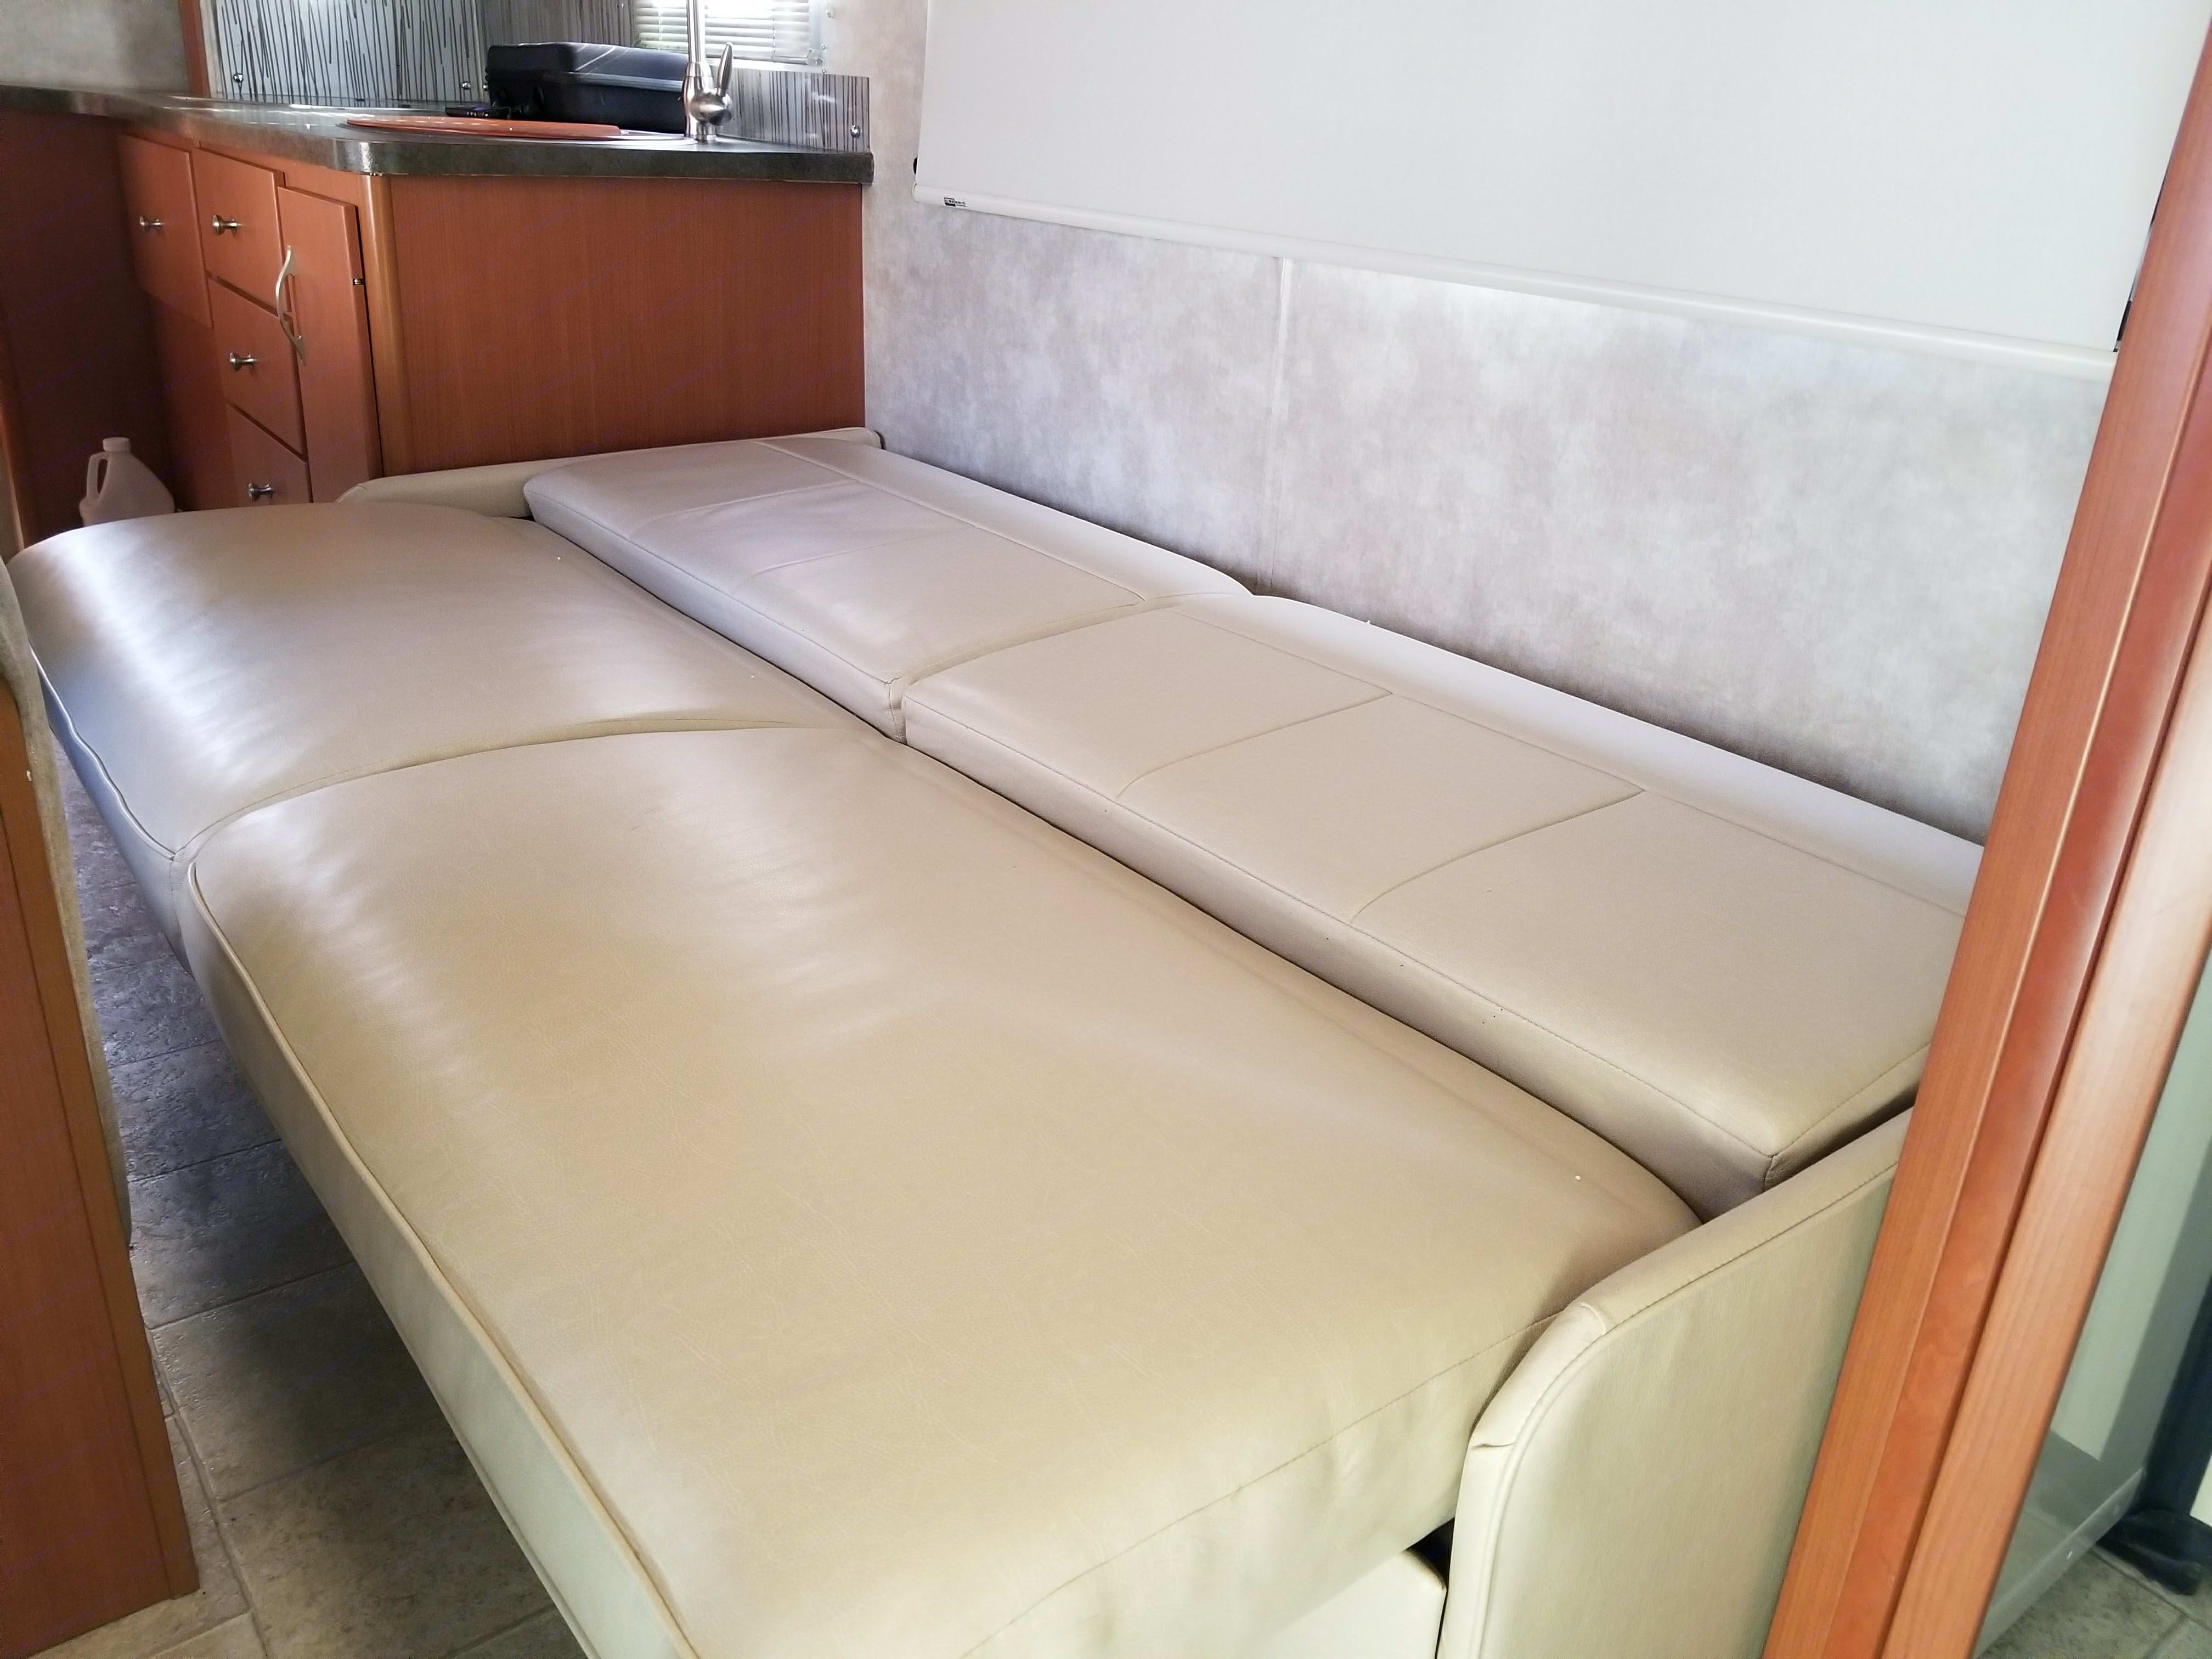 couch folded down into bed. Winnebago View 2011